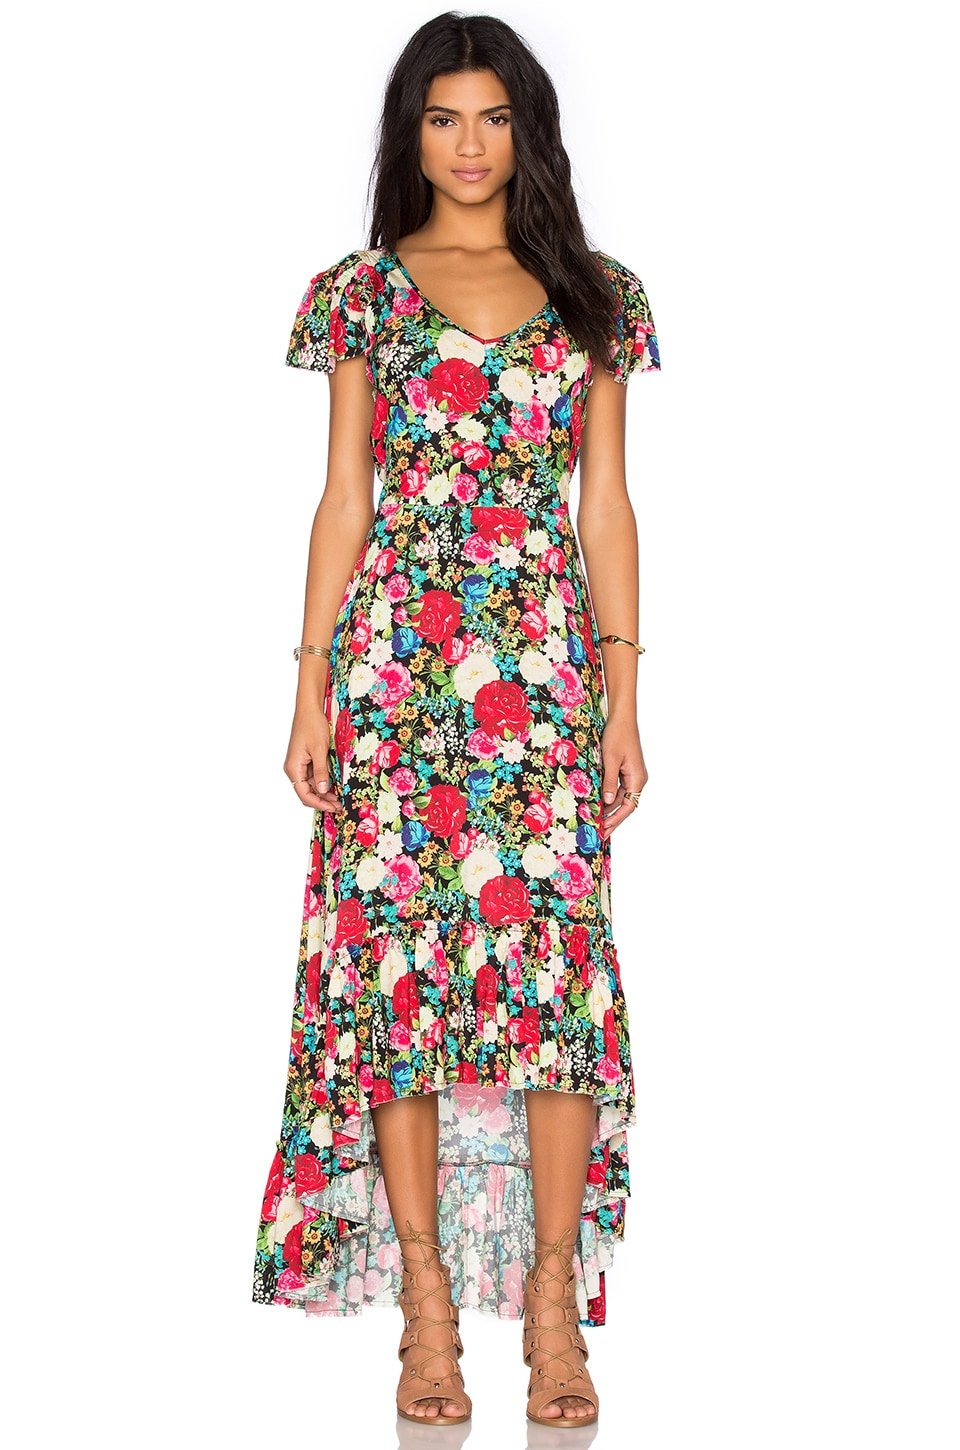 Wildfox Couture Floral Maxi Dress in Multi